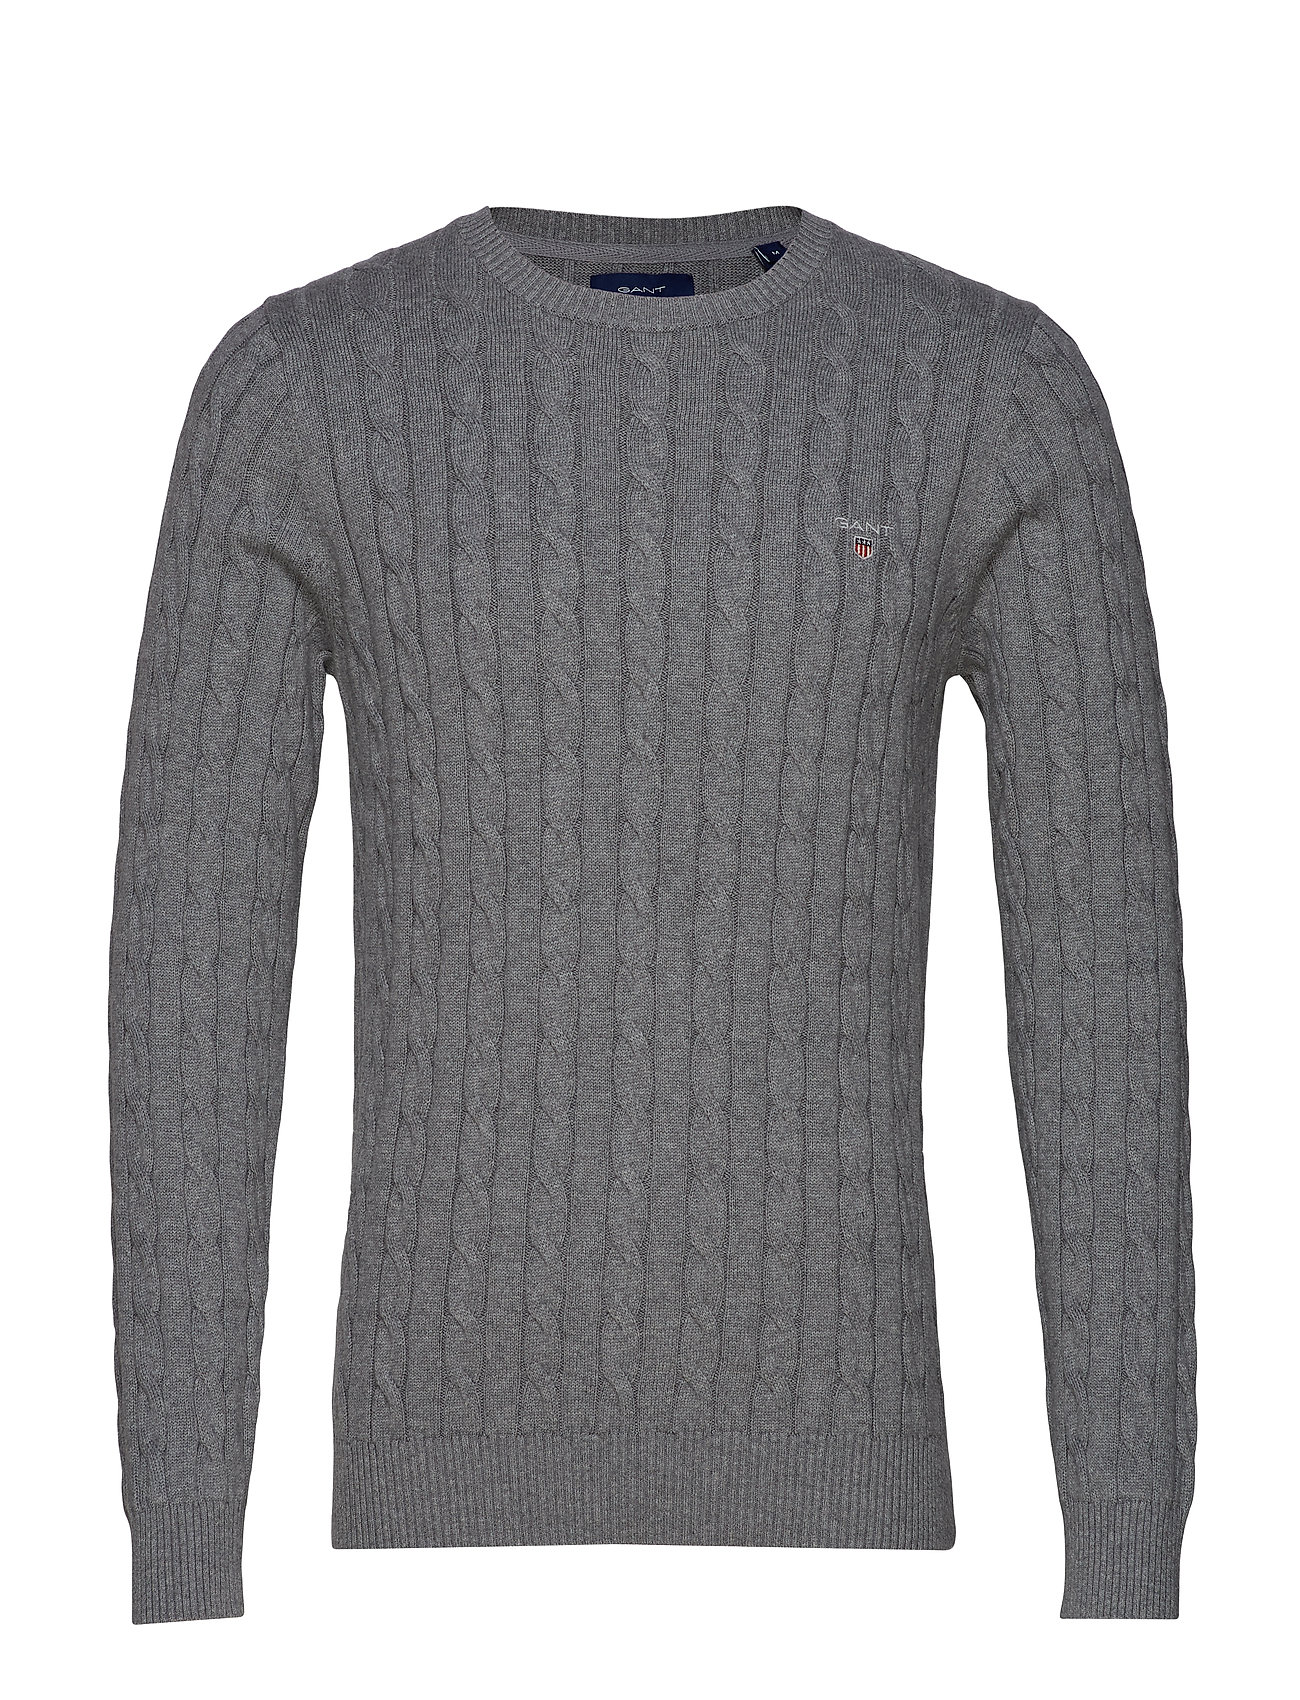 Gant COTTON CABLE CREW - DARK GREY MELANGE